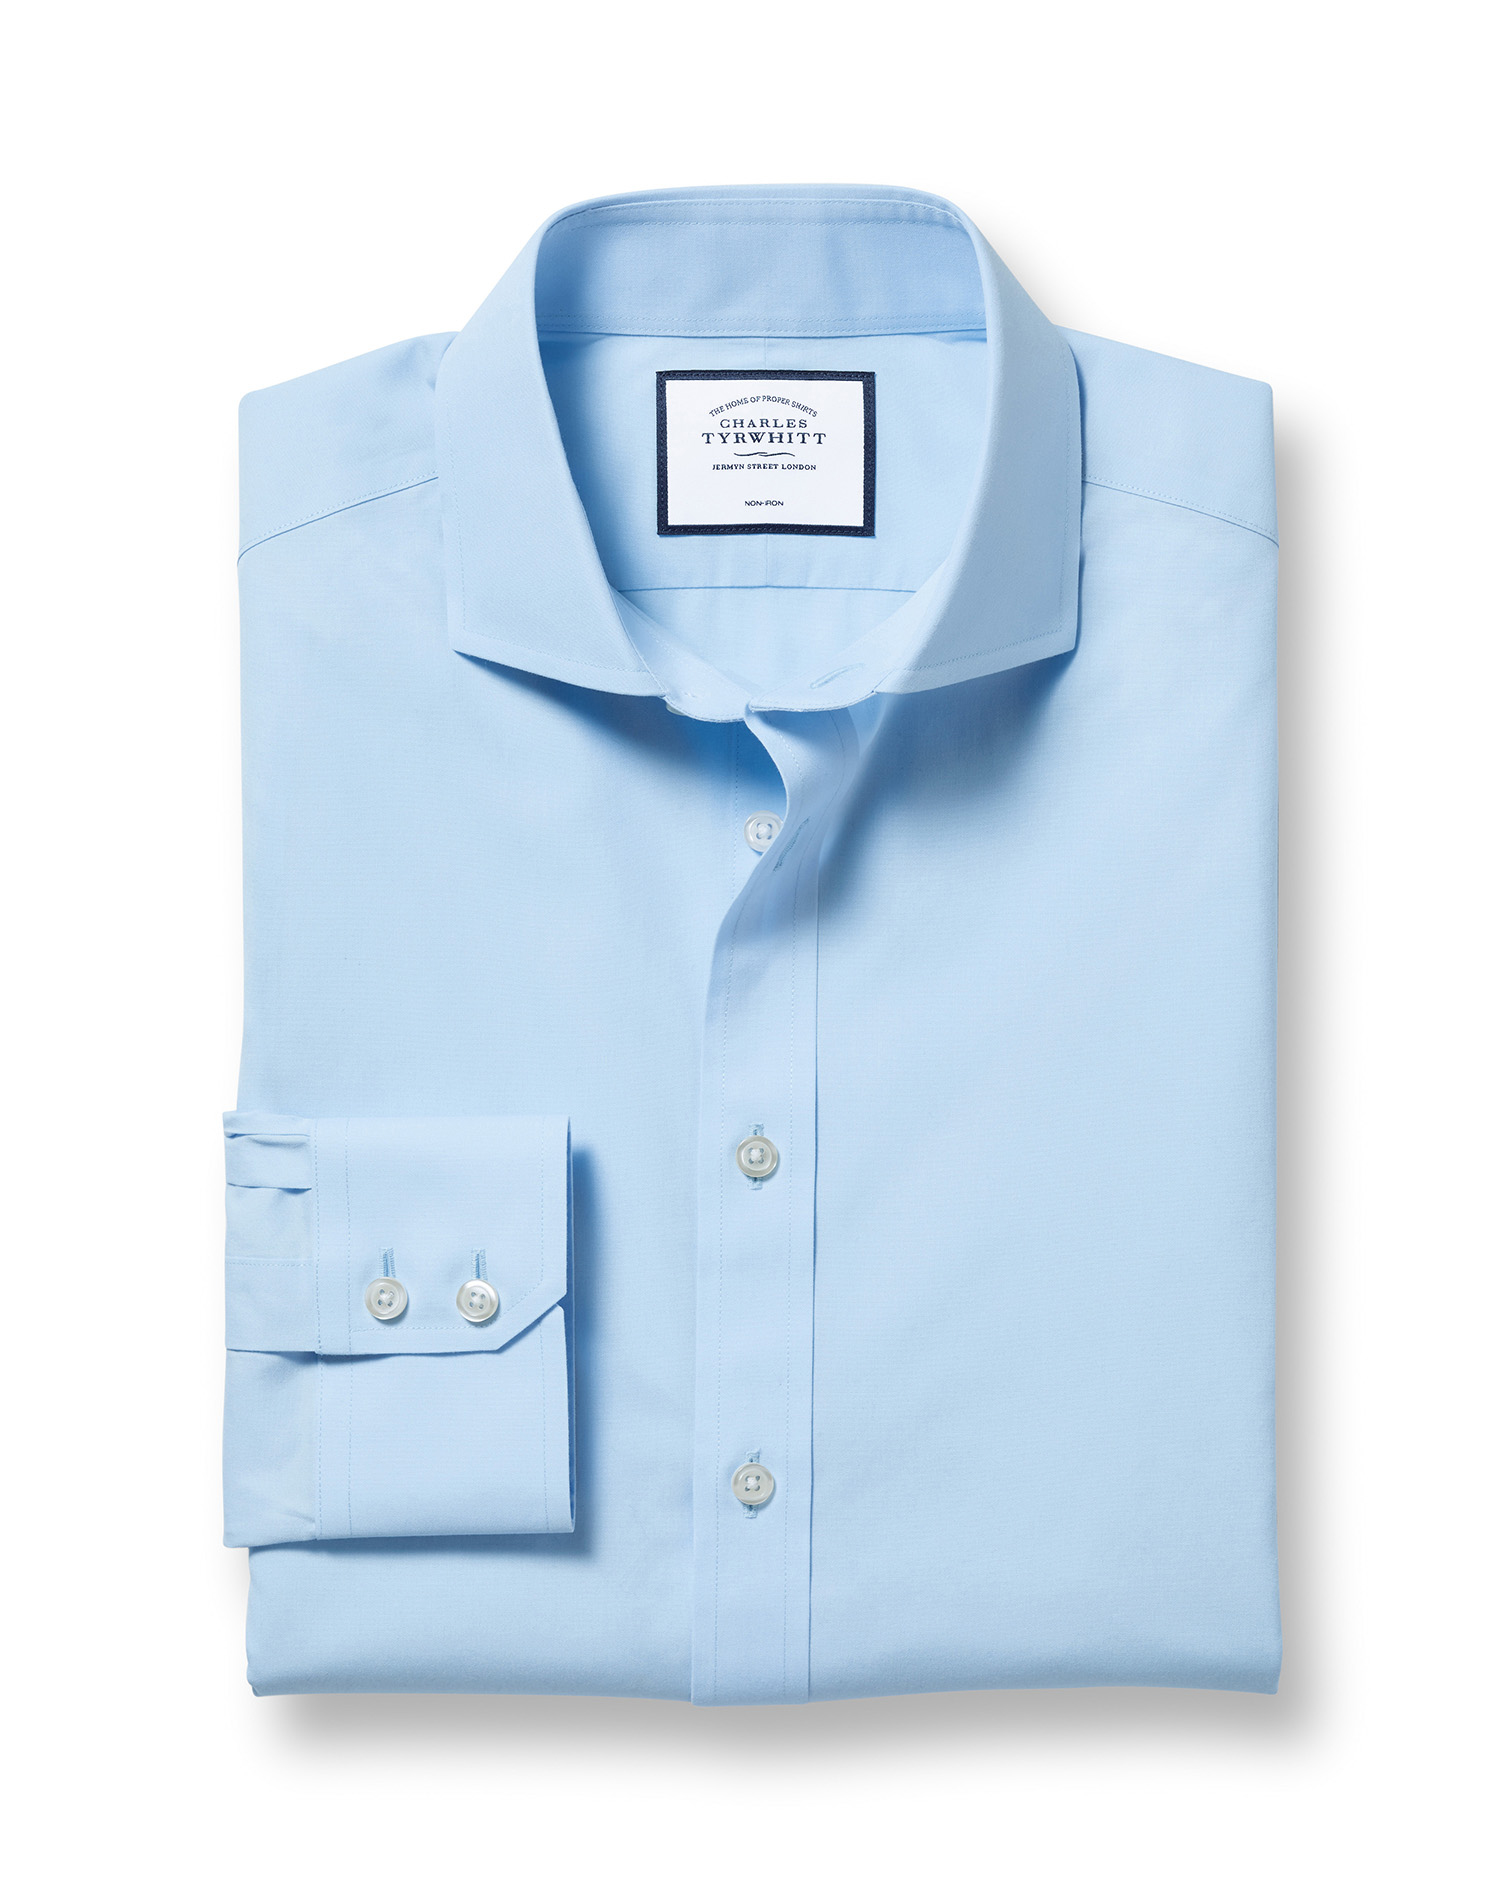 Extra Slim Fit Cutaway Non-Iron Poplin Sky Blue Cotton Formal Shirt Single Cuff Size 15/35 by Charle